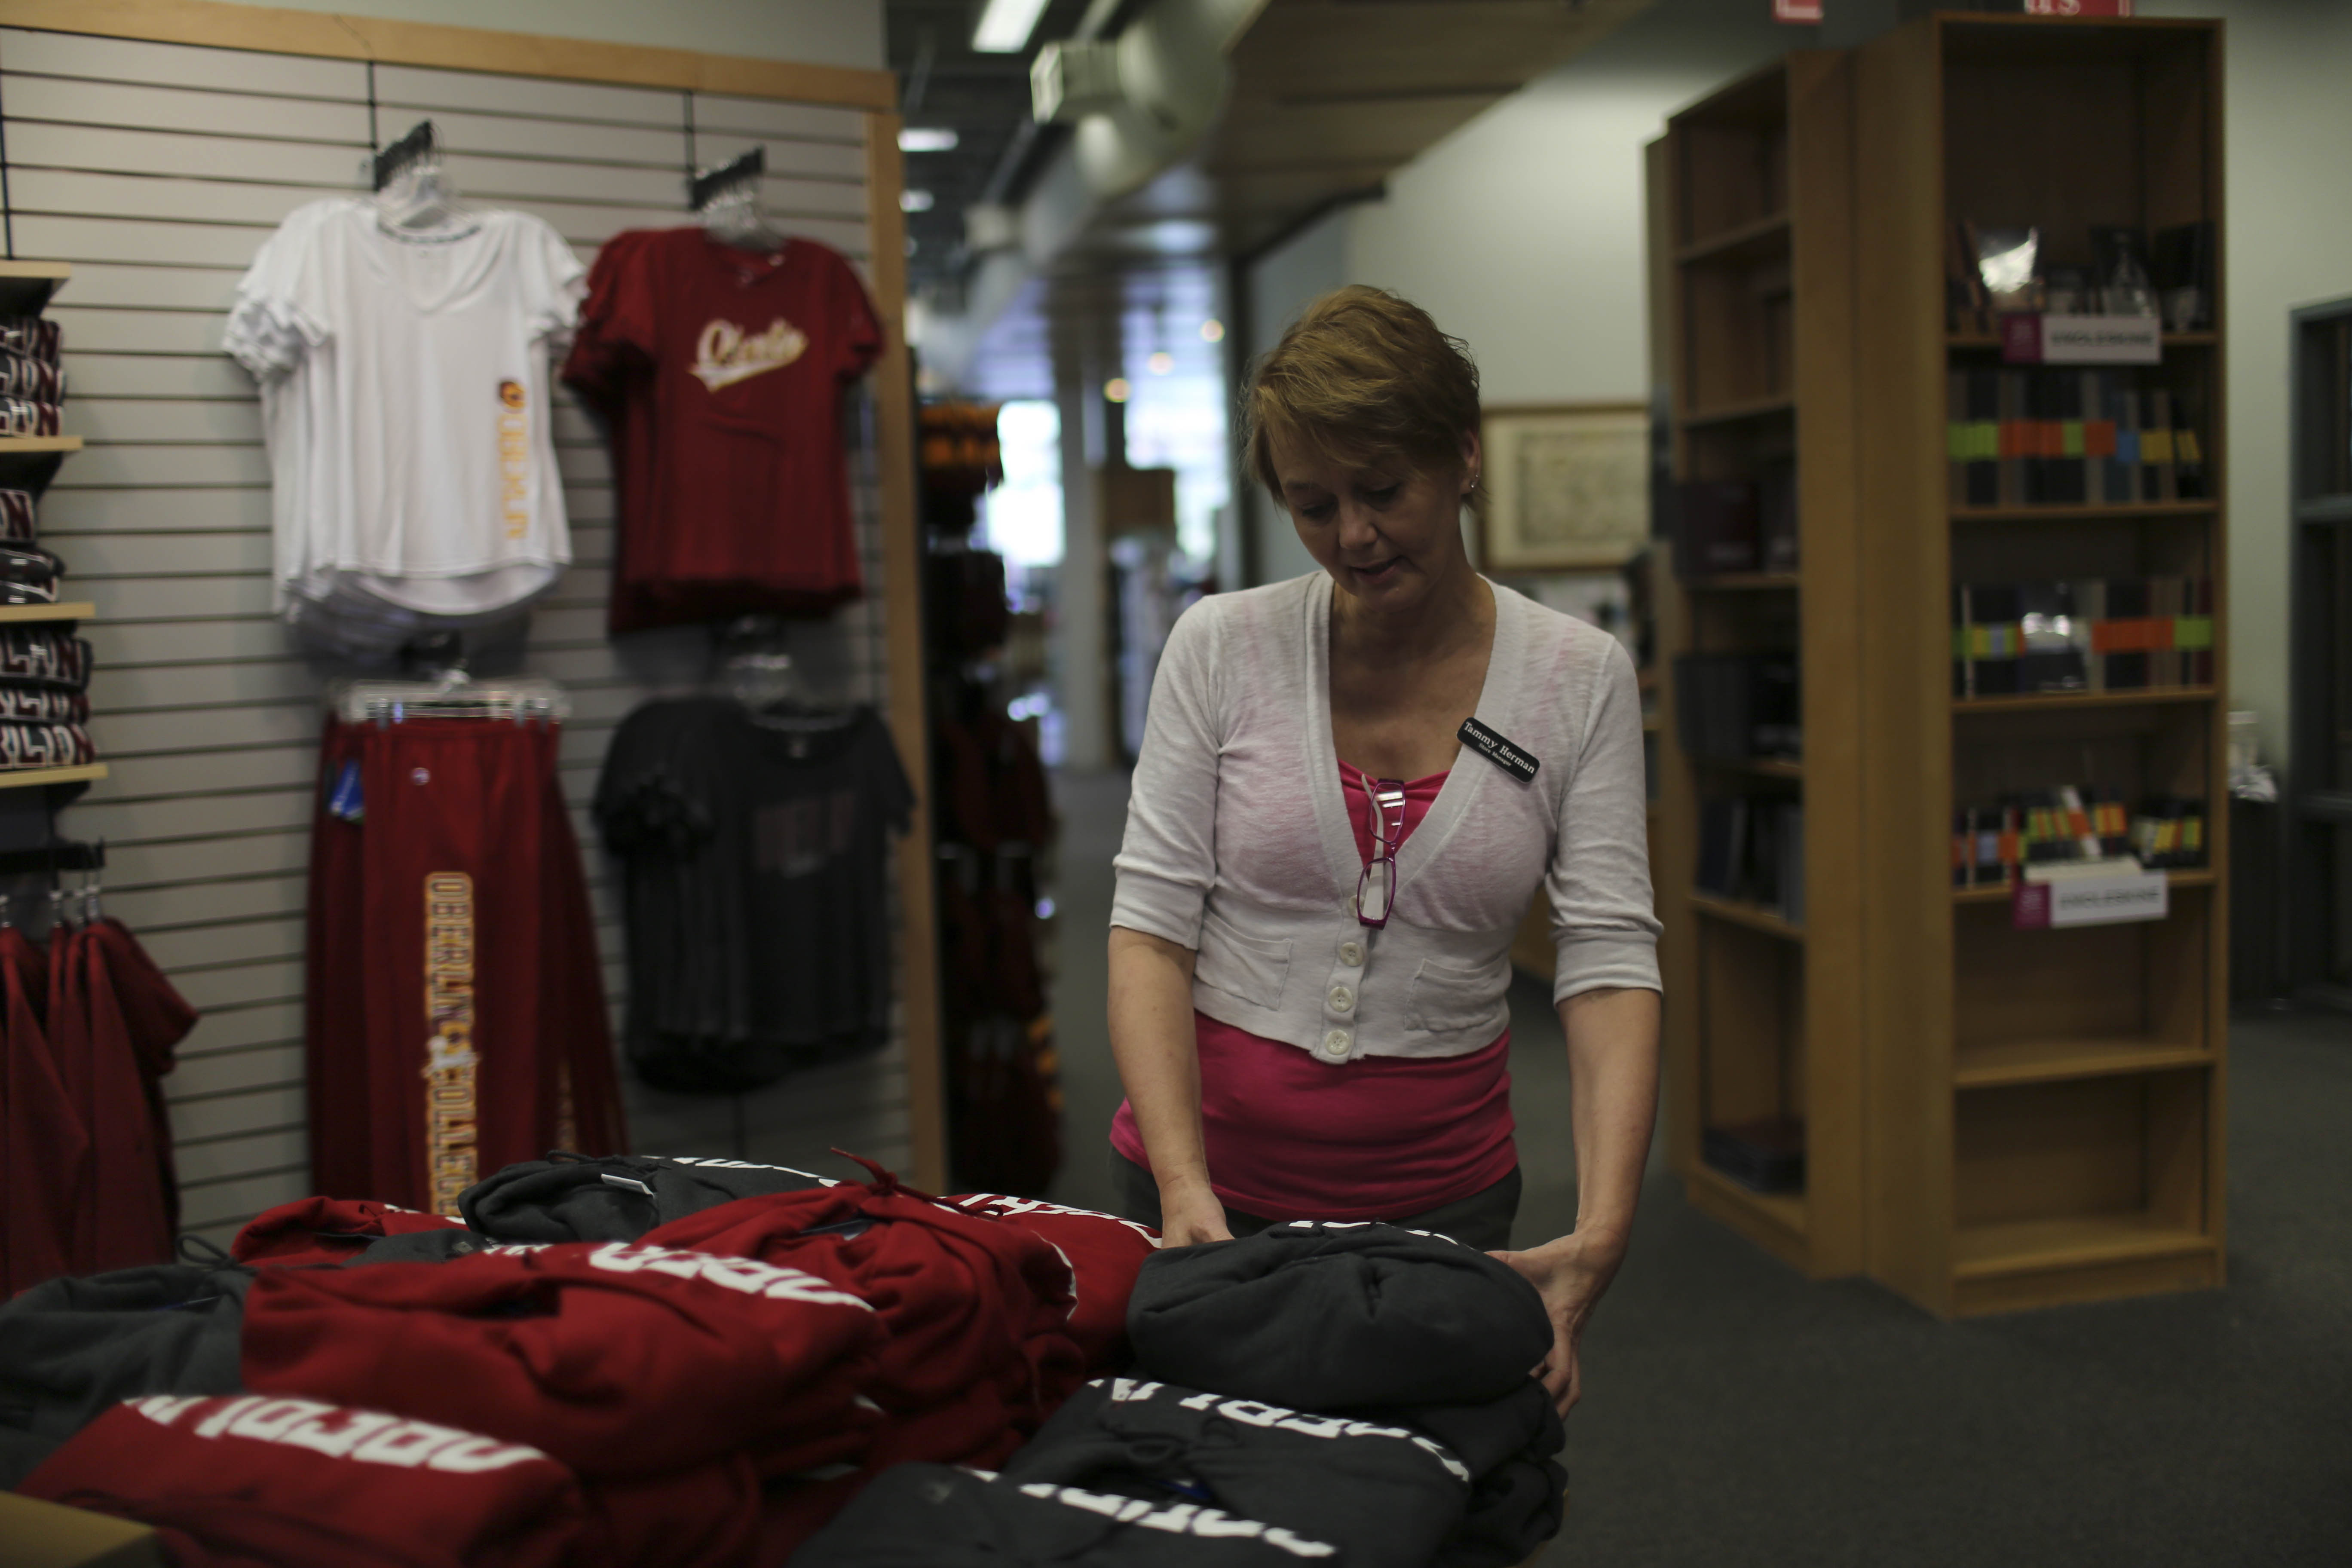 College Bookstore Manager Tammy Herman reorganizes clothes Thursday. The College's Purchasing Committee will soon respond to the discovery that Nike breached the College's Sweatshop-Free Apparel Code of Purchasing.